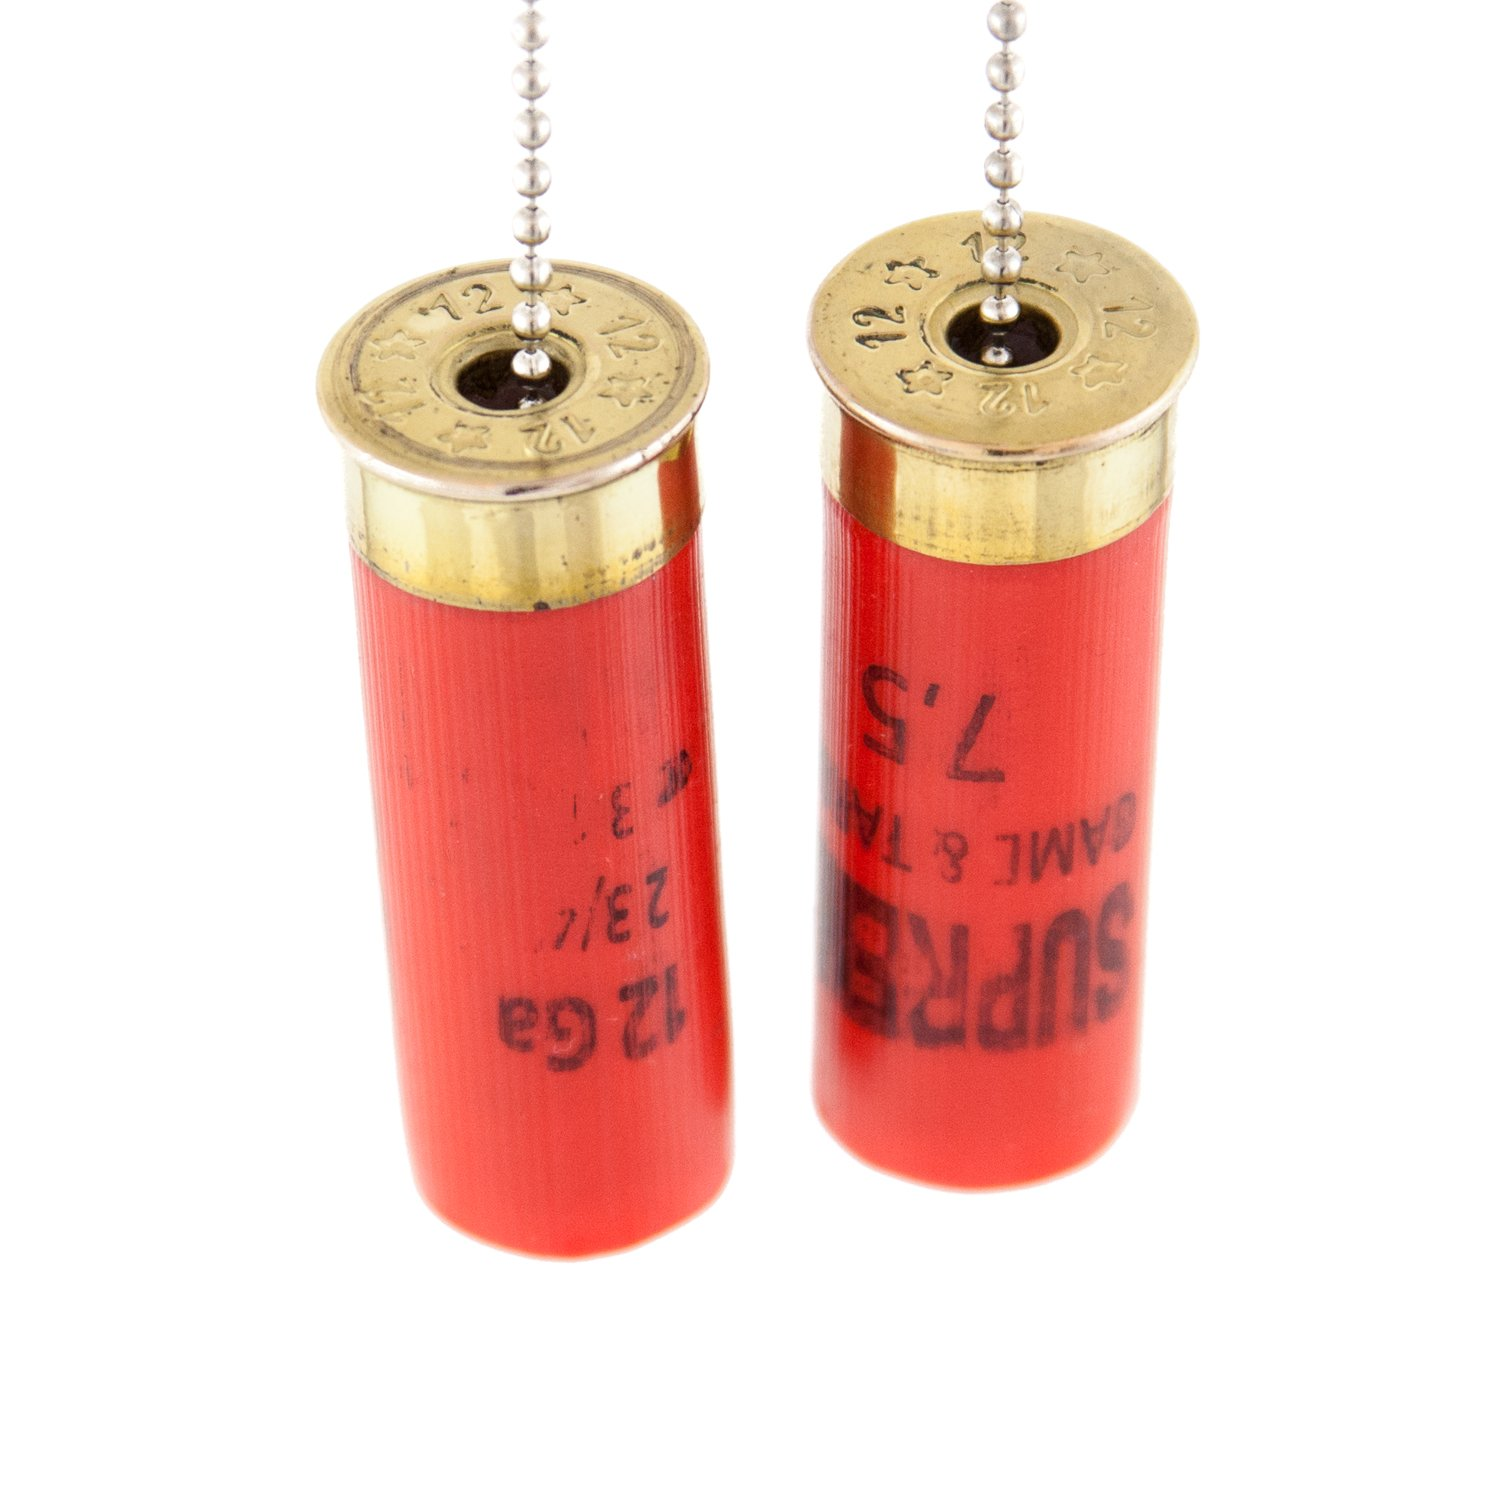 Real 12 Gauge Shot Gun Shell Light or Fan Pulls Made in the USA - Set of 2